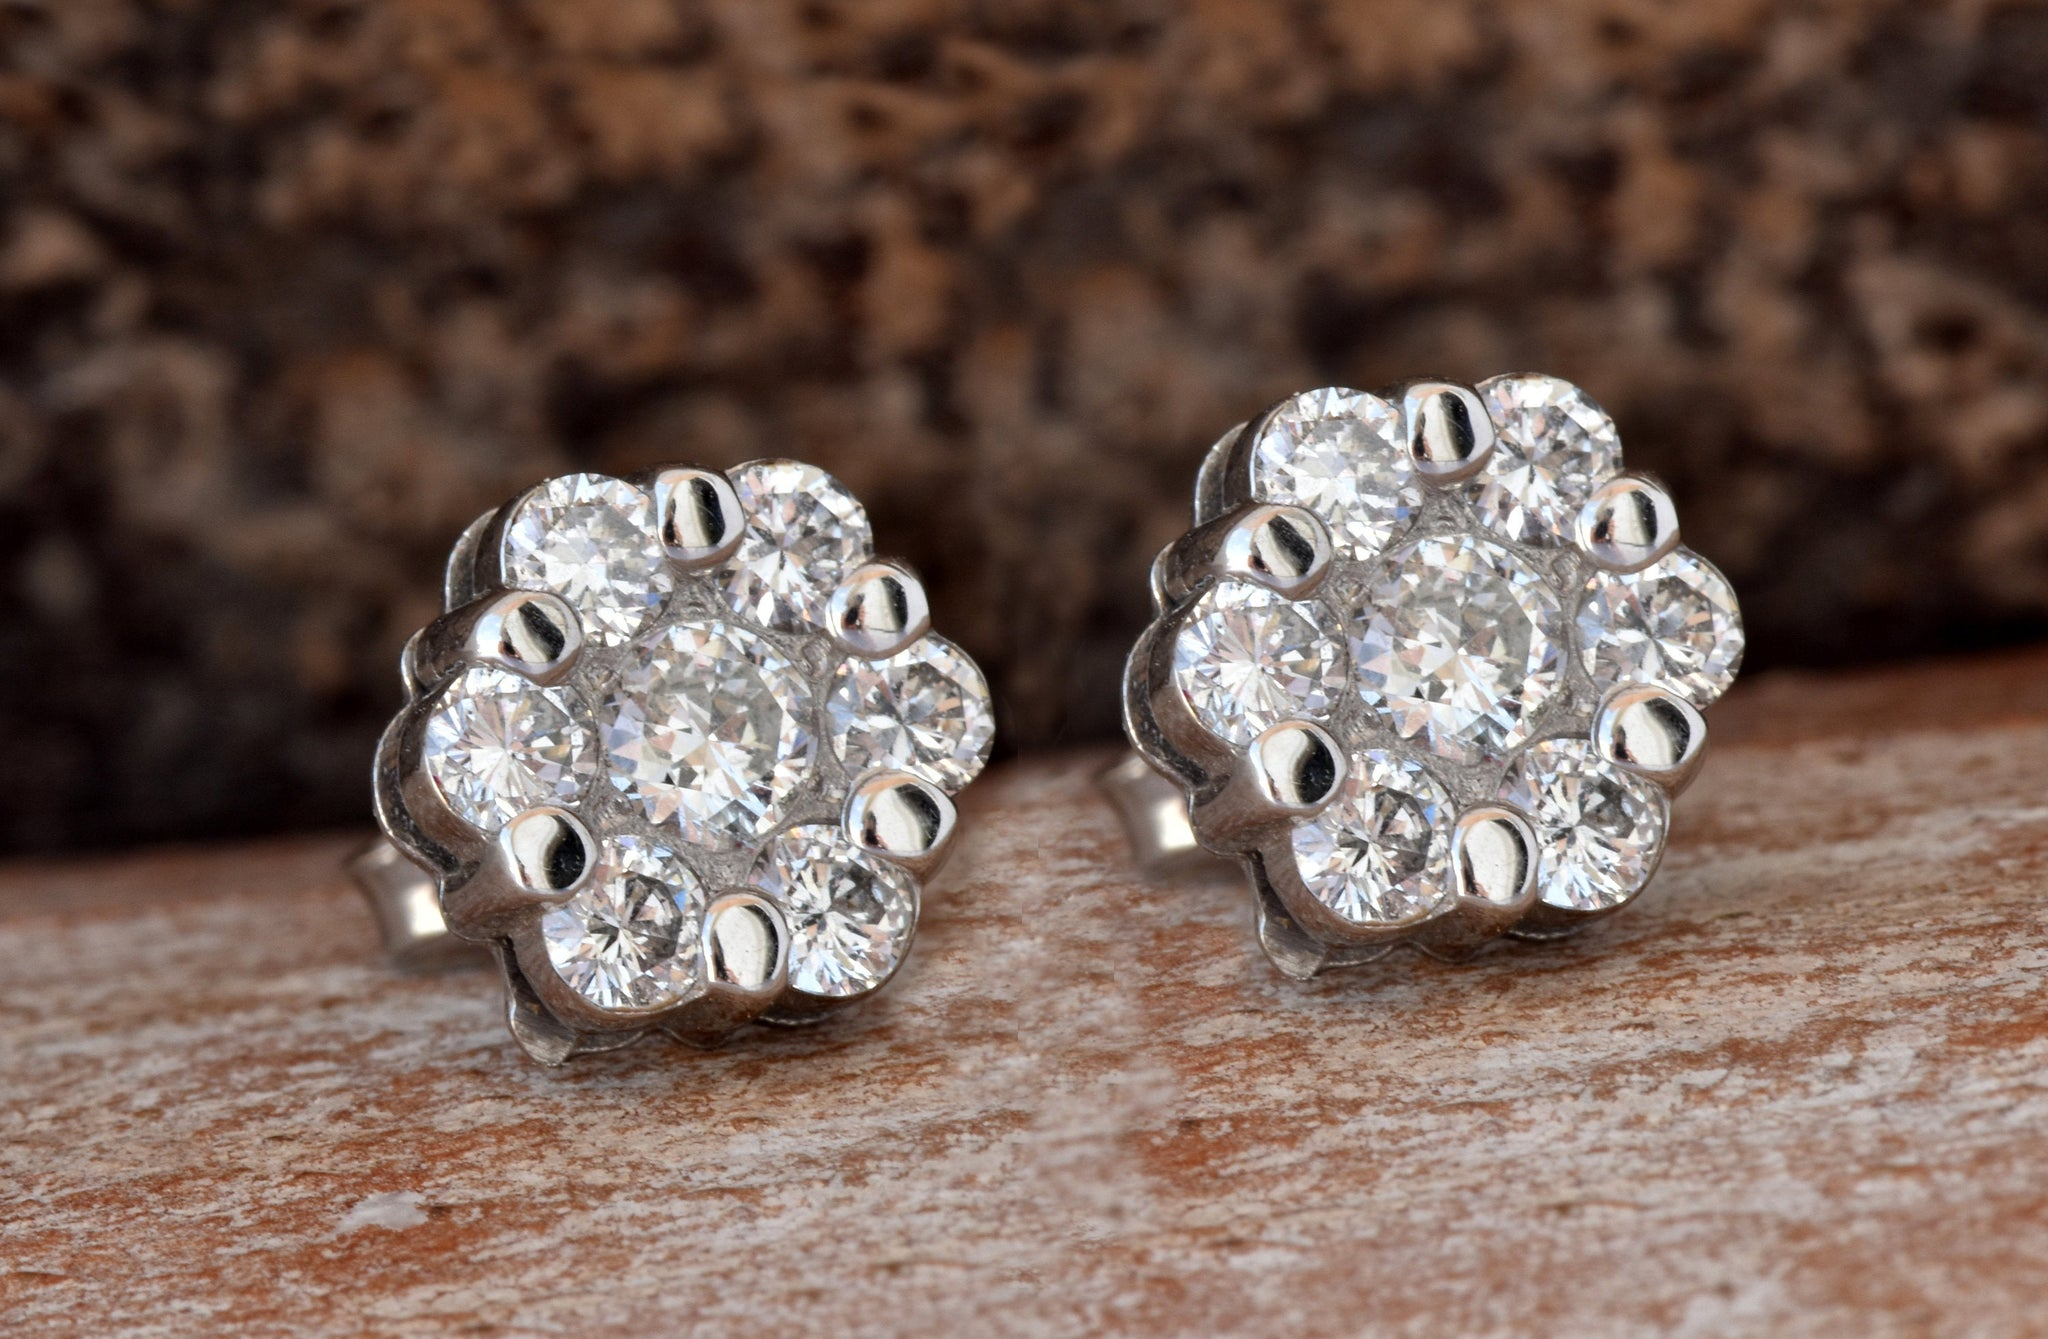 Flower diamond earrings-1.20 carat Gold Diamond Earrings-14K White Gold Earrings-Stud Earrings-Women Jewelry - SevenCarat